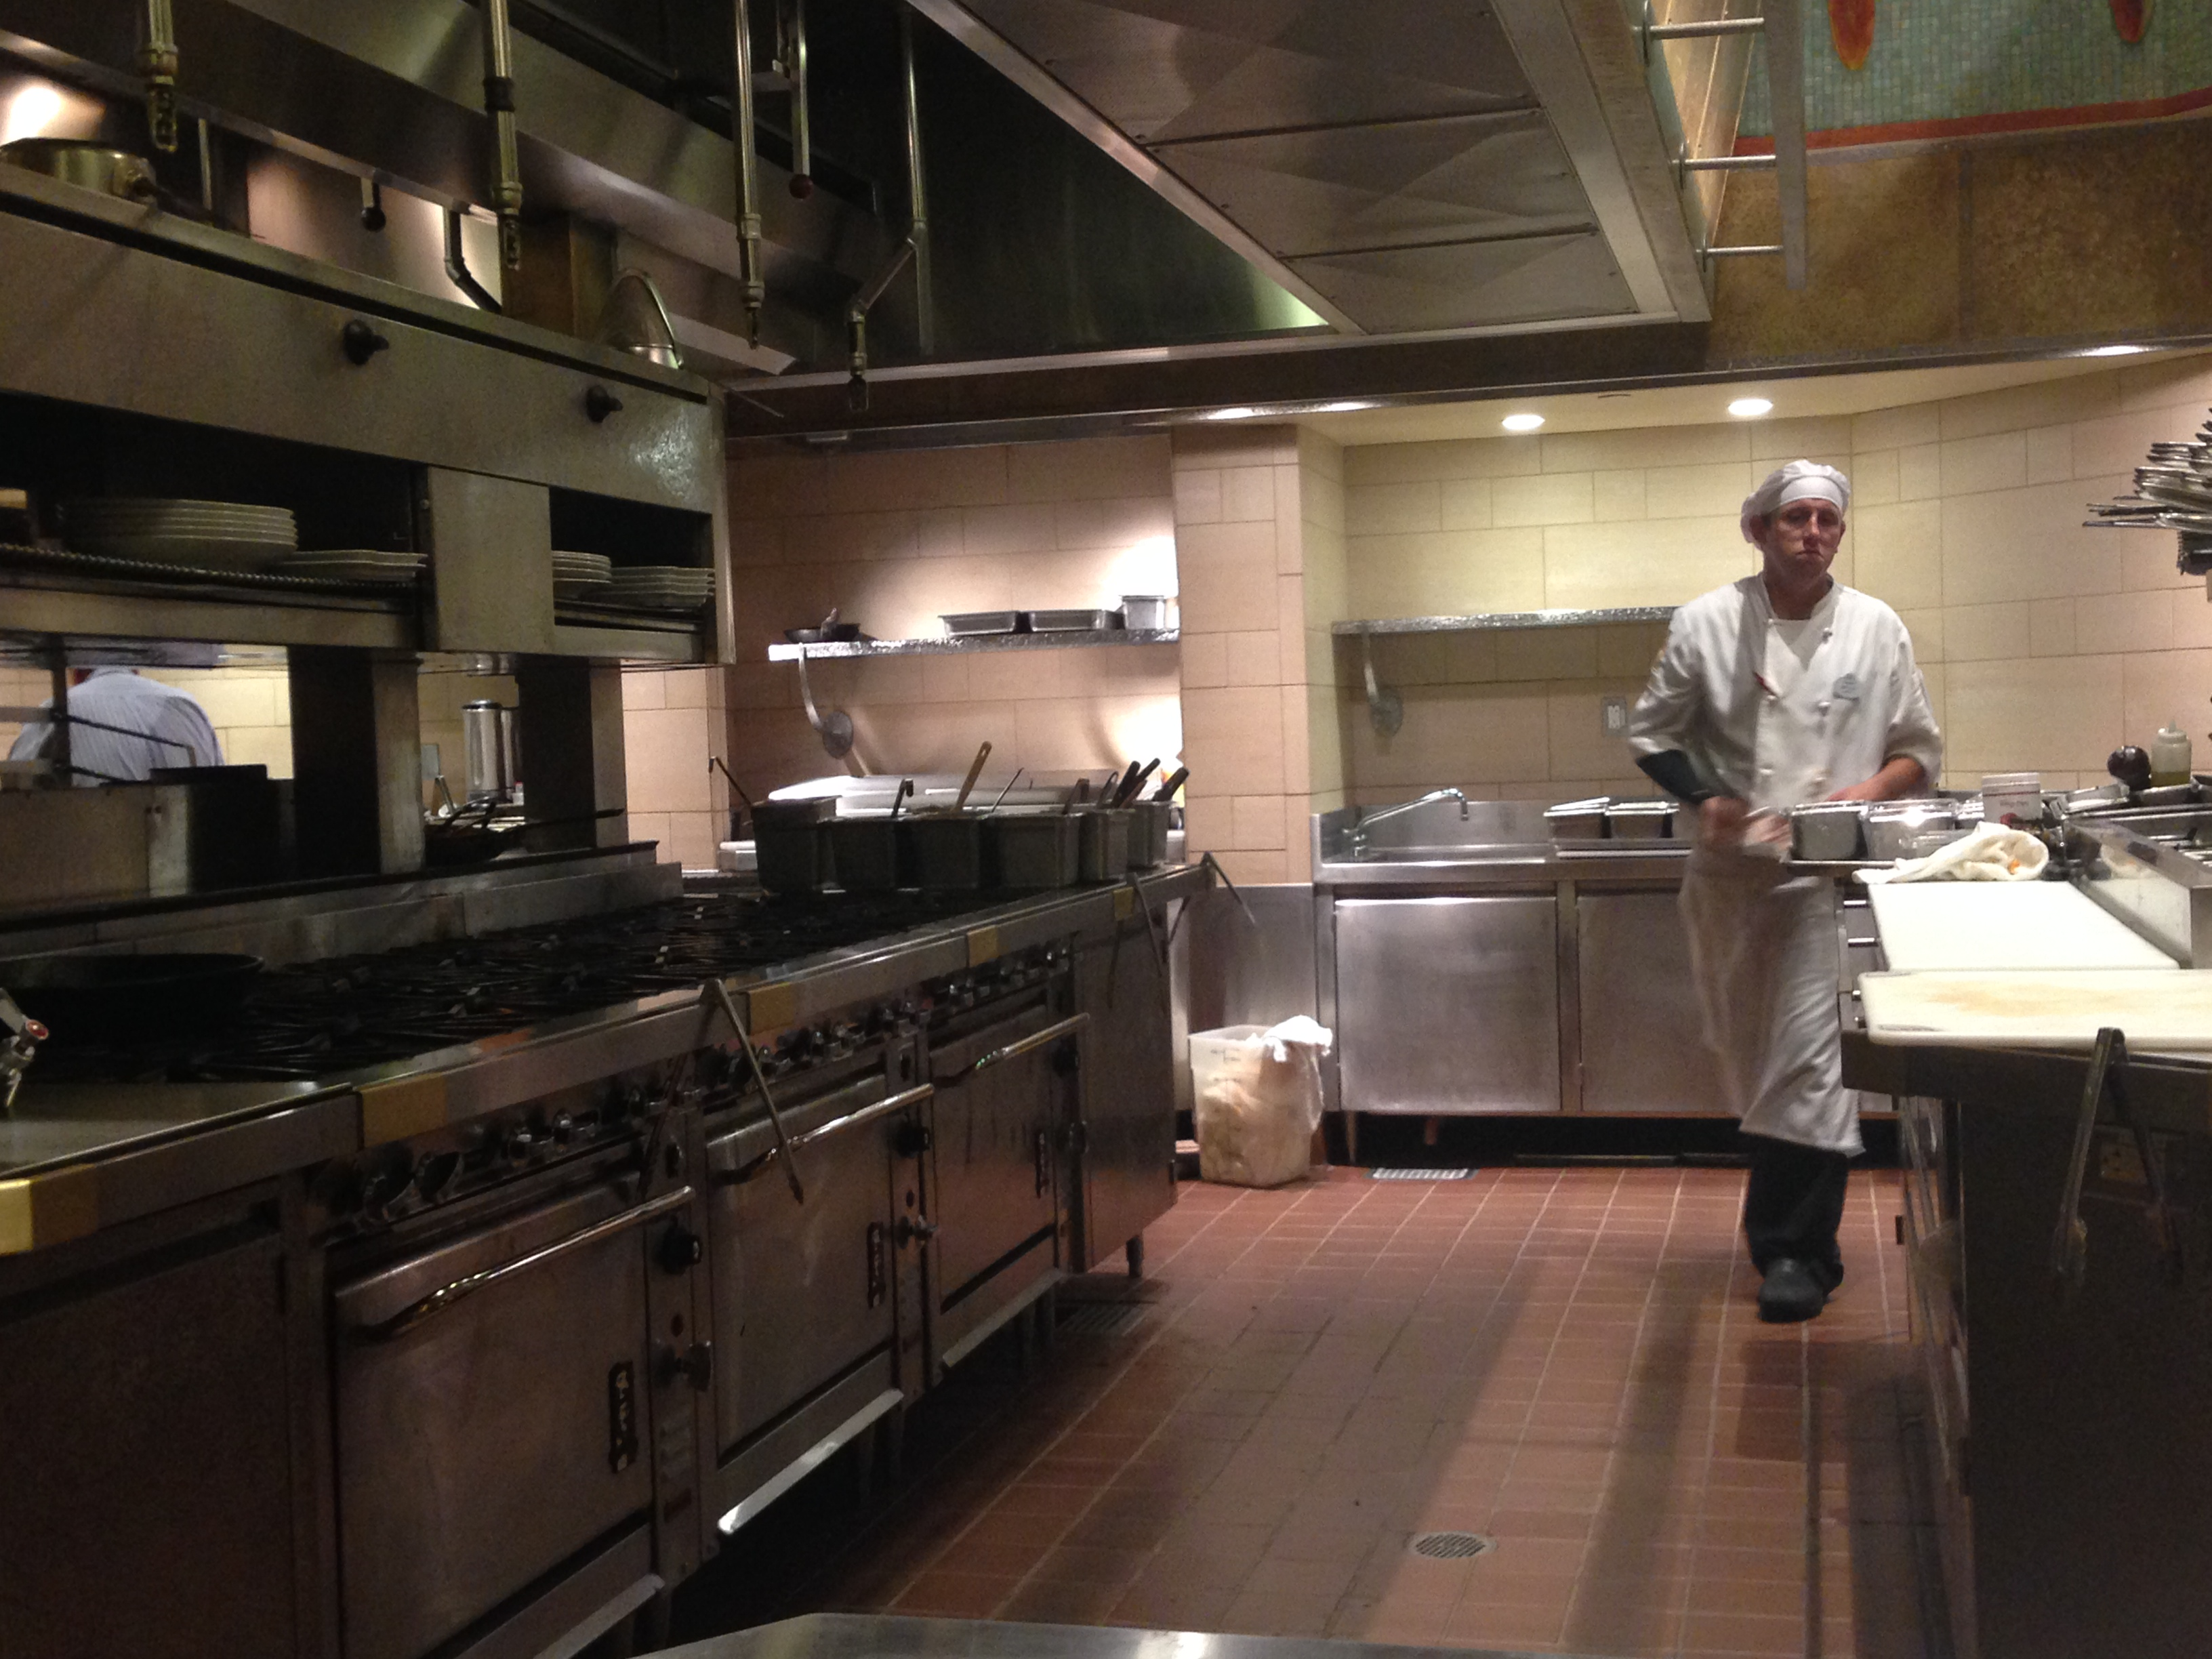 Restaurant Kitchen Work Stations mouseplanet - disneyland resort updateadrienne vincent-phoenix